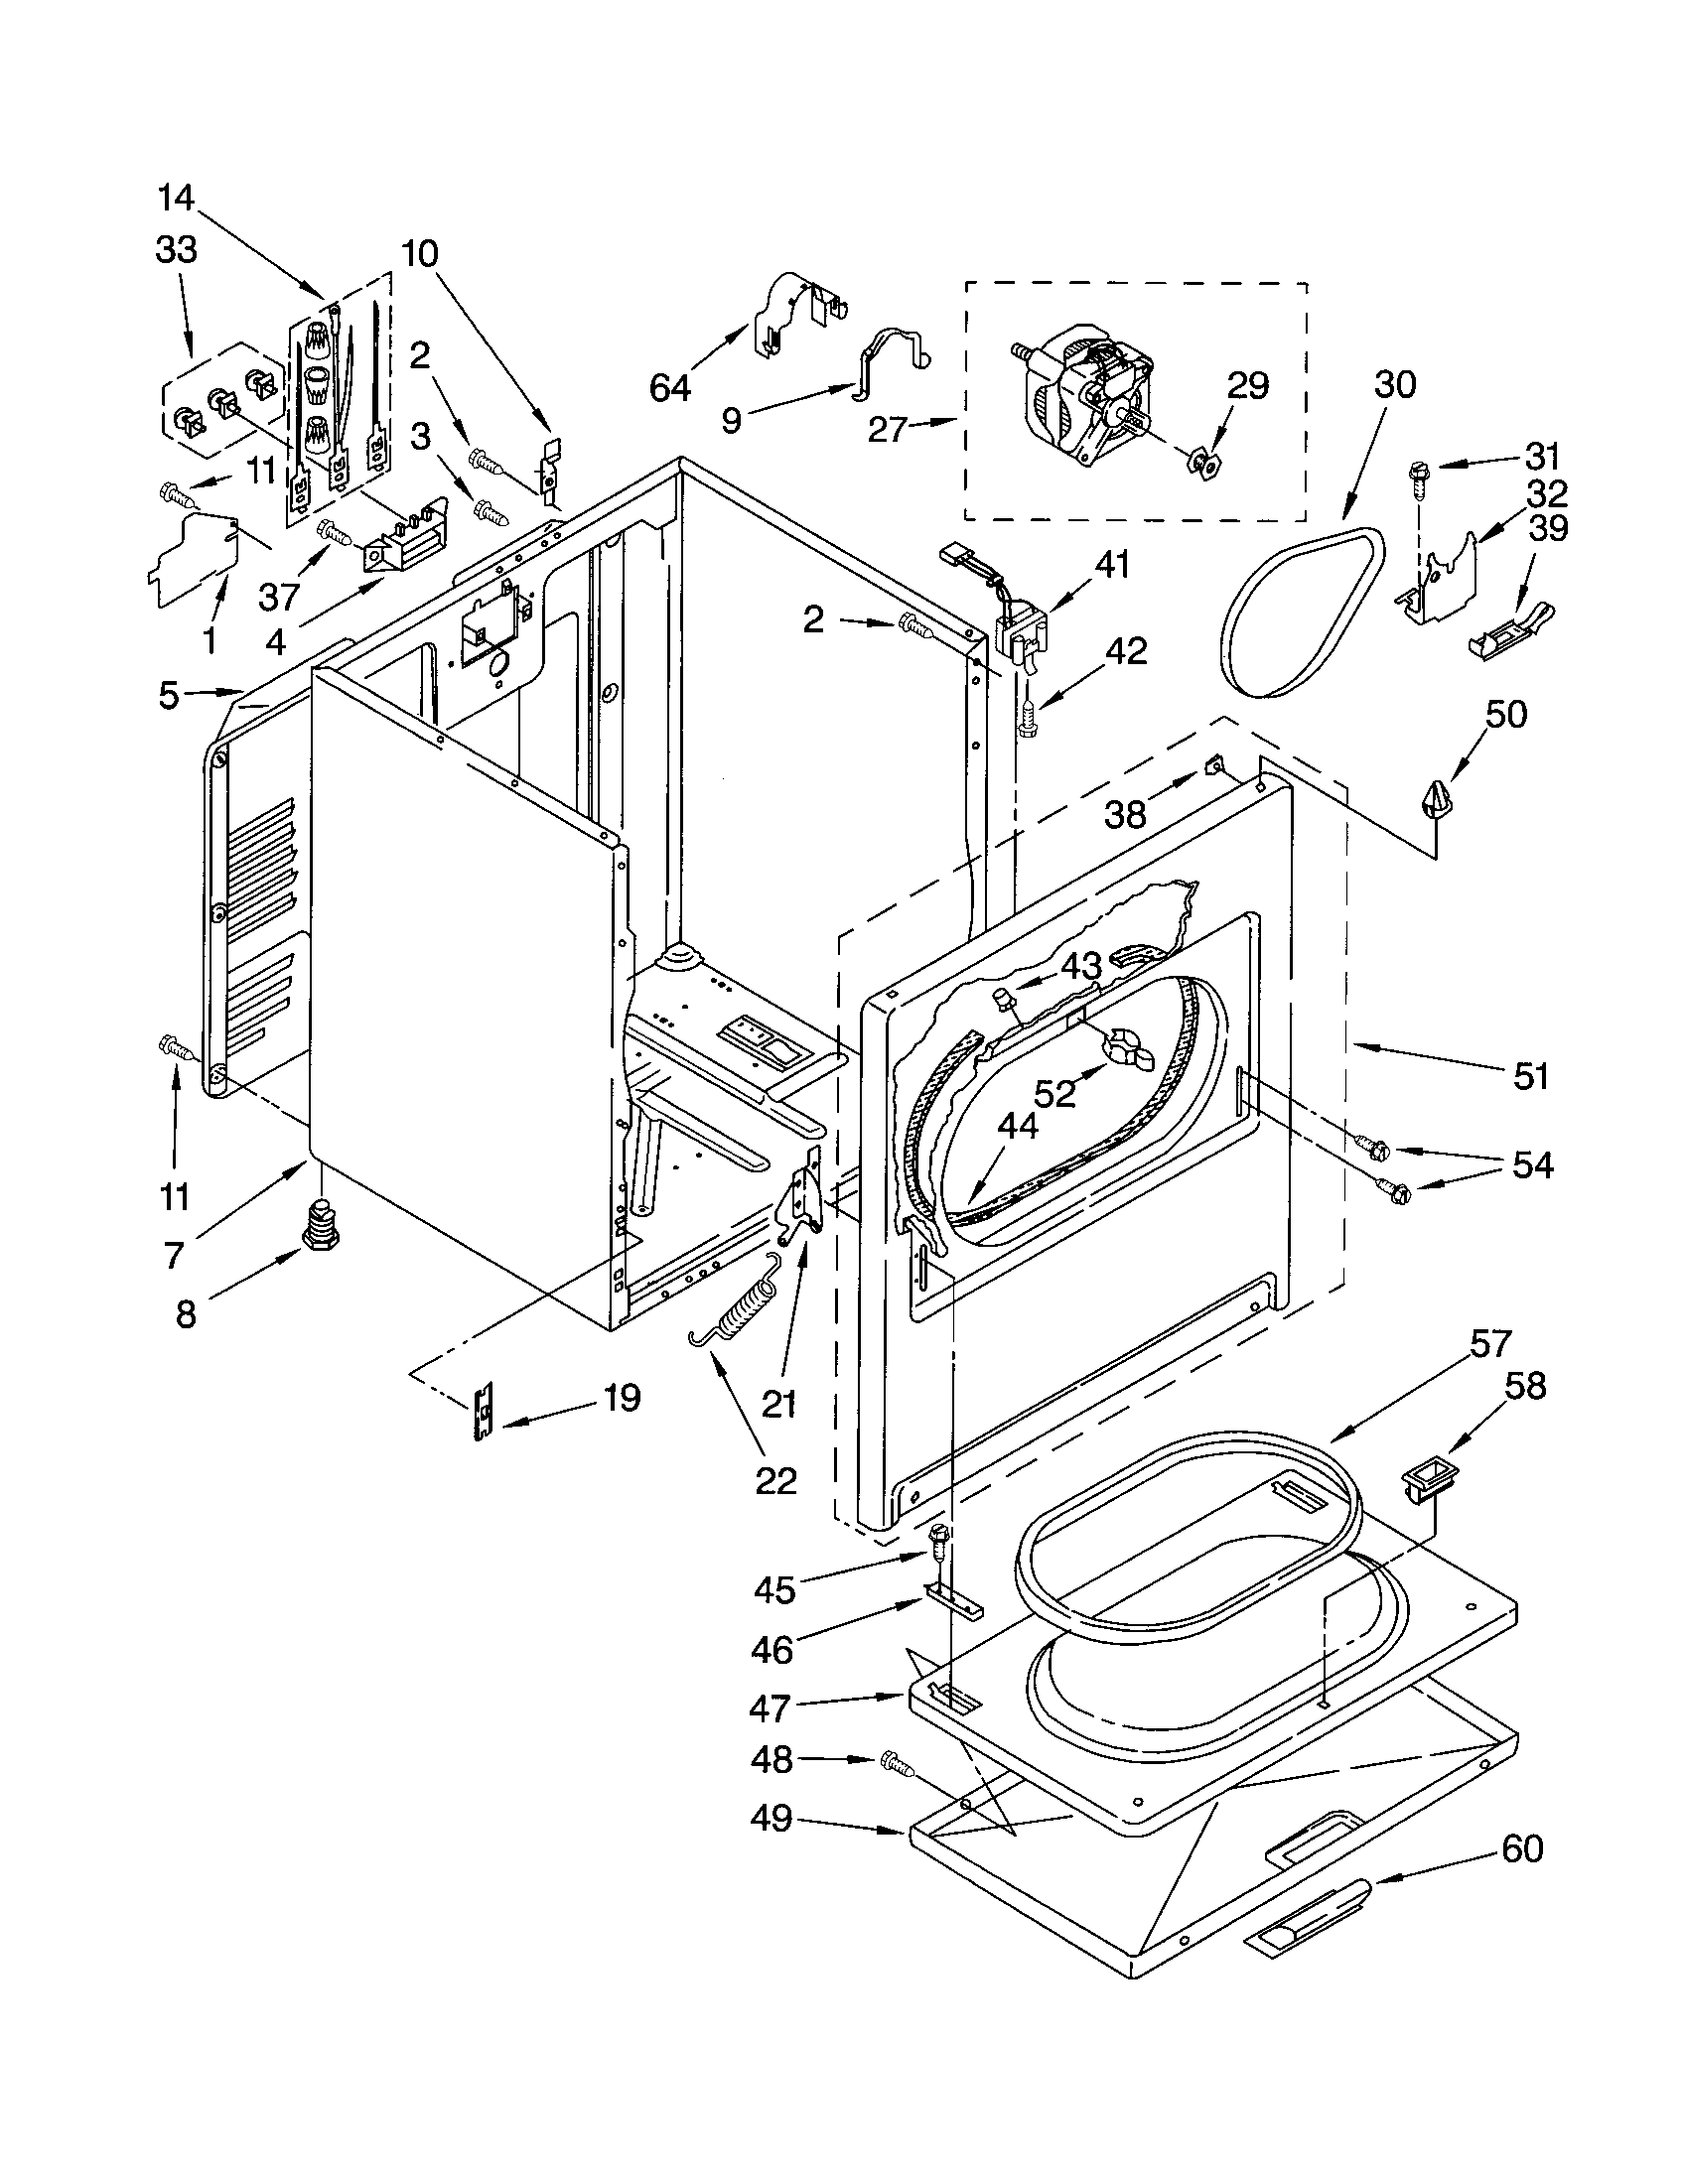 Wiring Diagram For Kenmore Electric Dryer - Diagrams Catalogue on